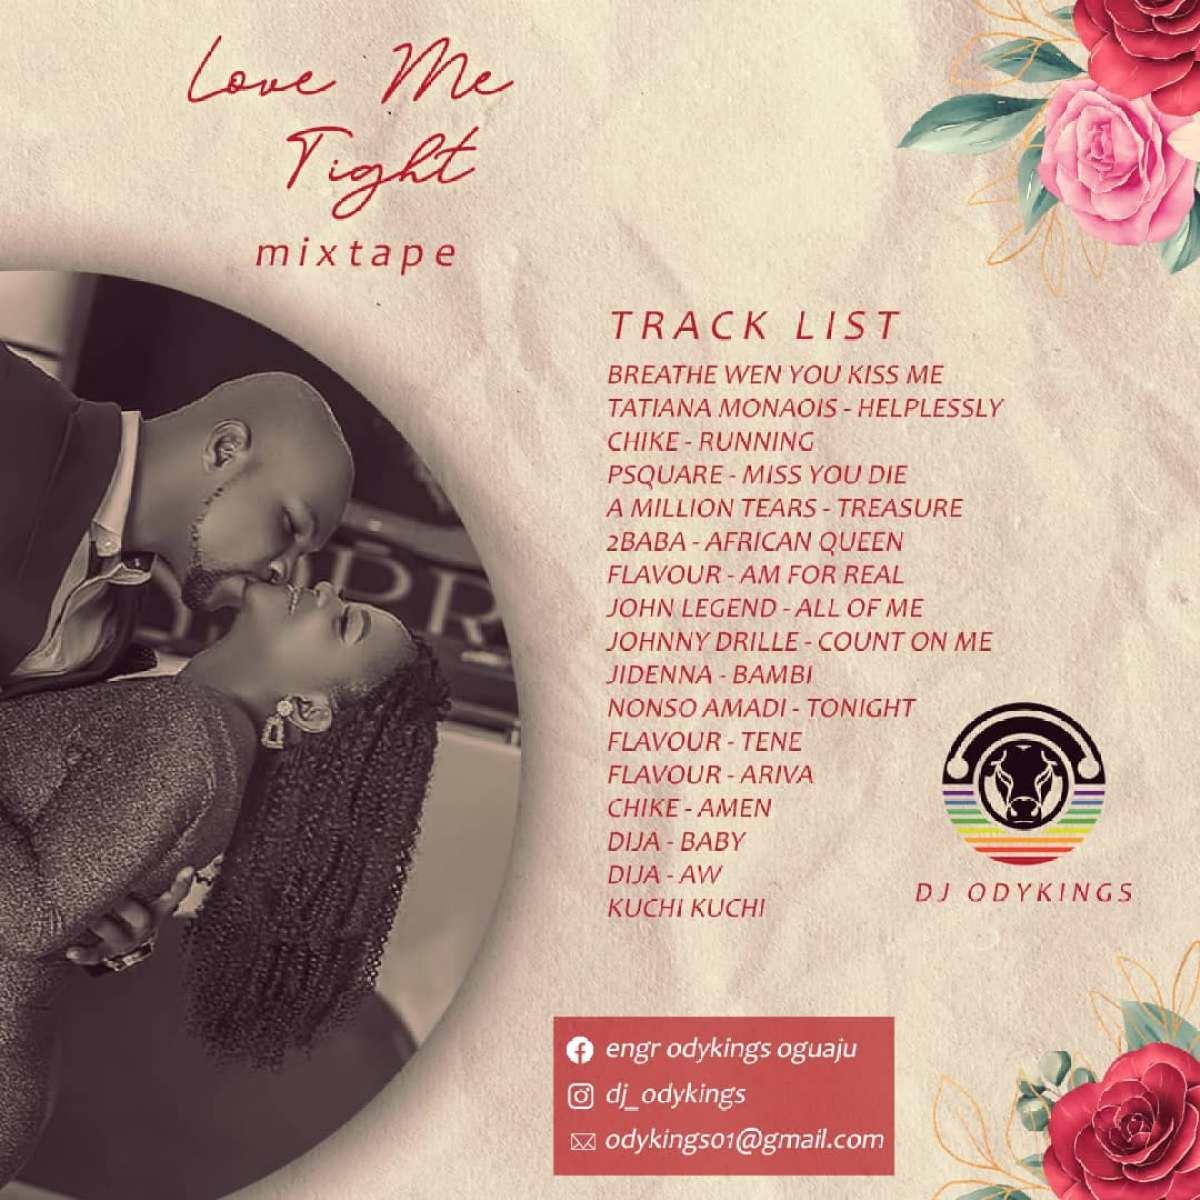 Download DJ Odykings – Love Me Tight Mixtape